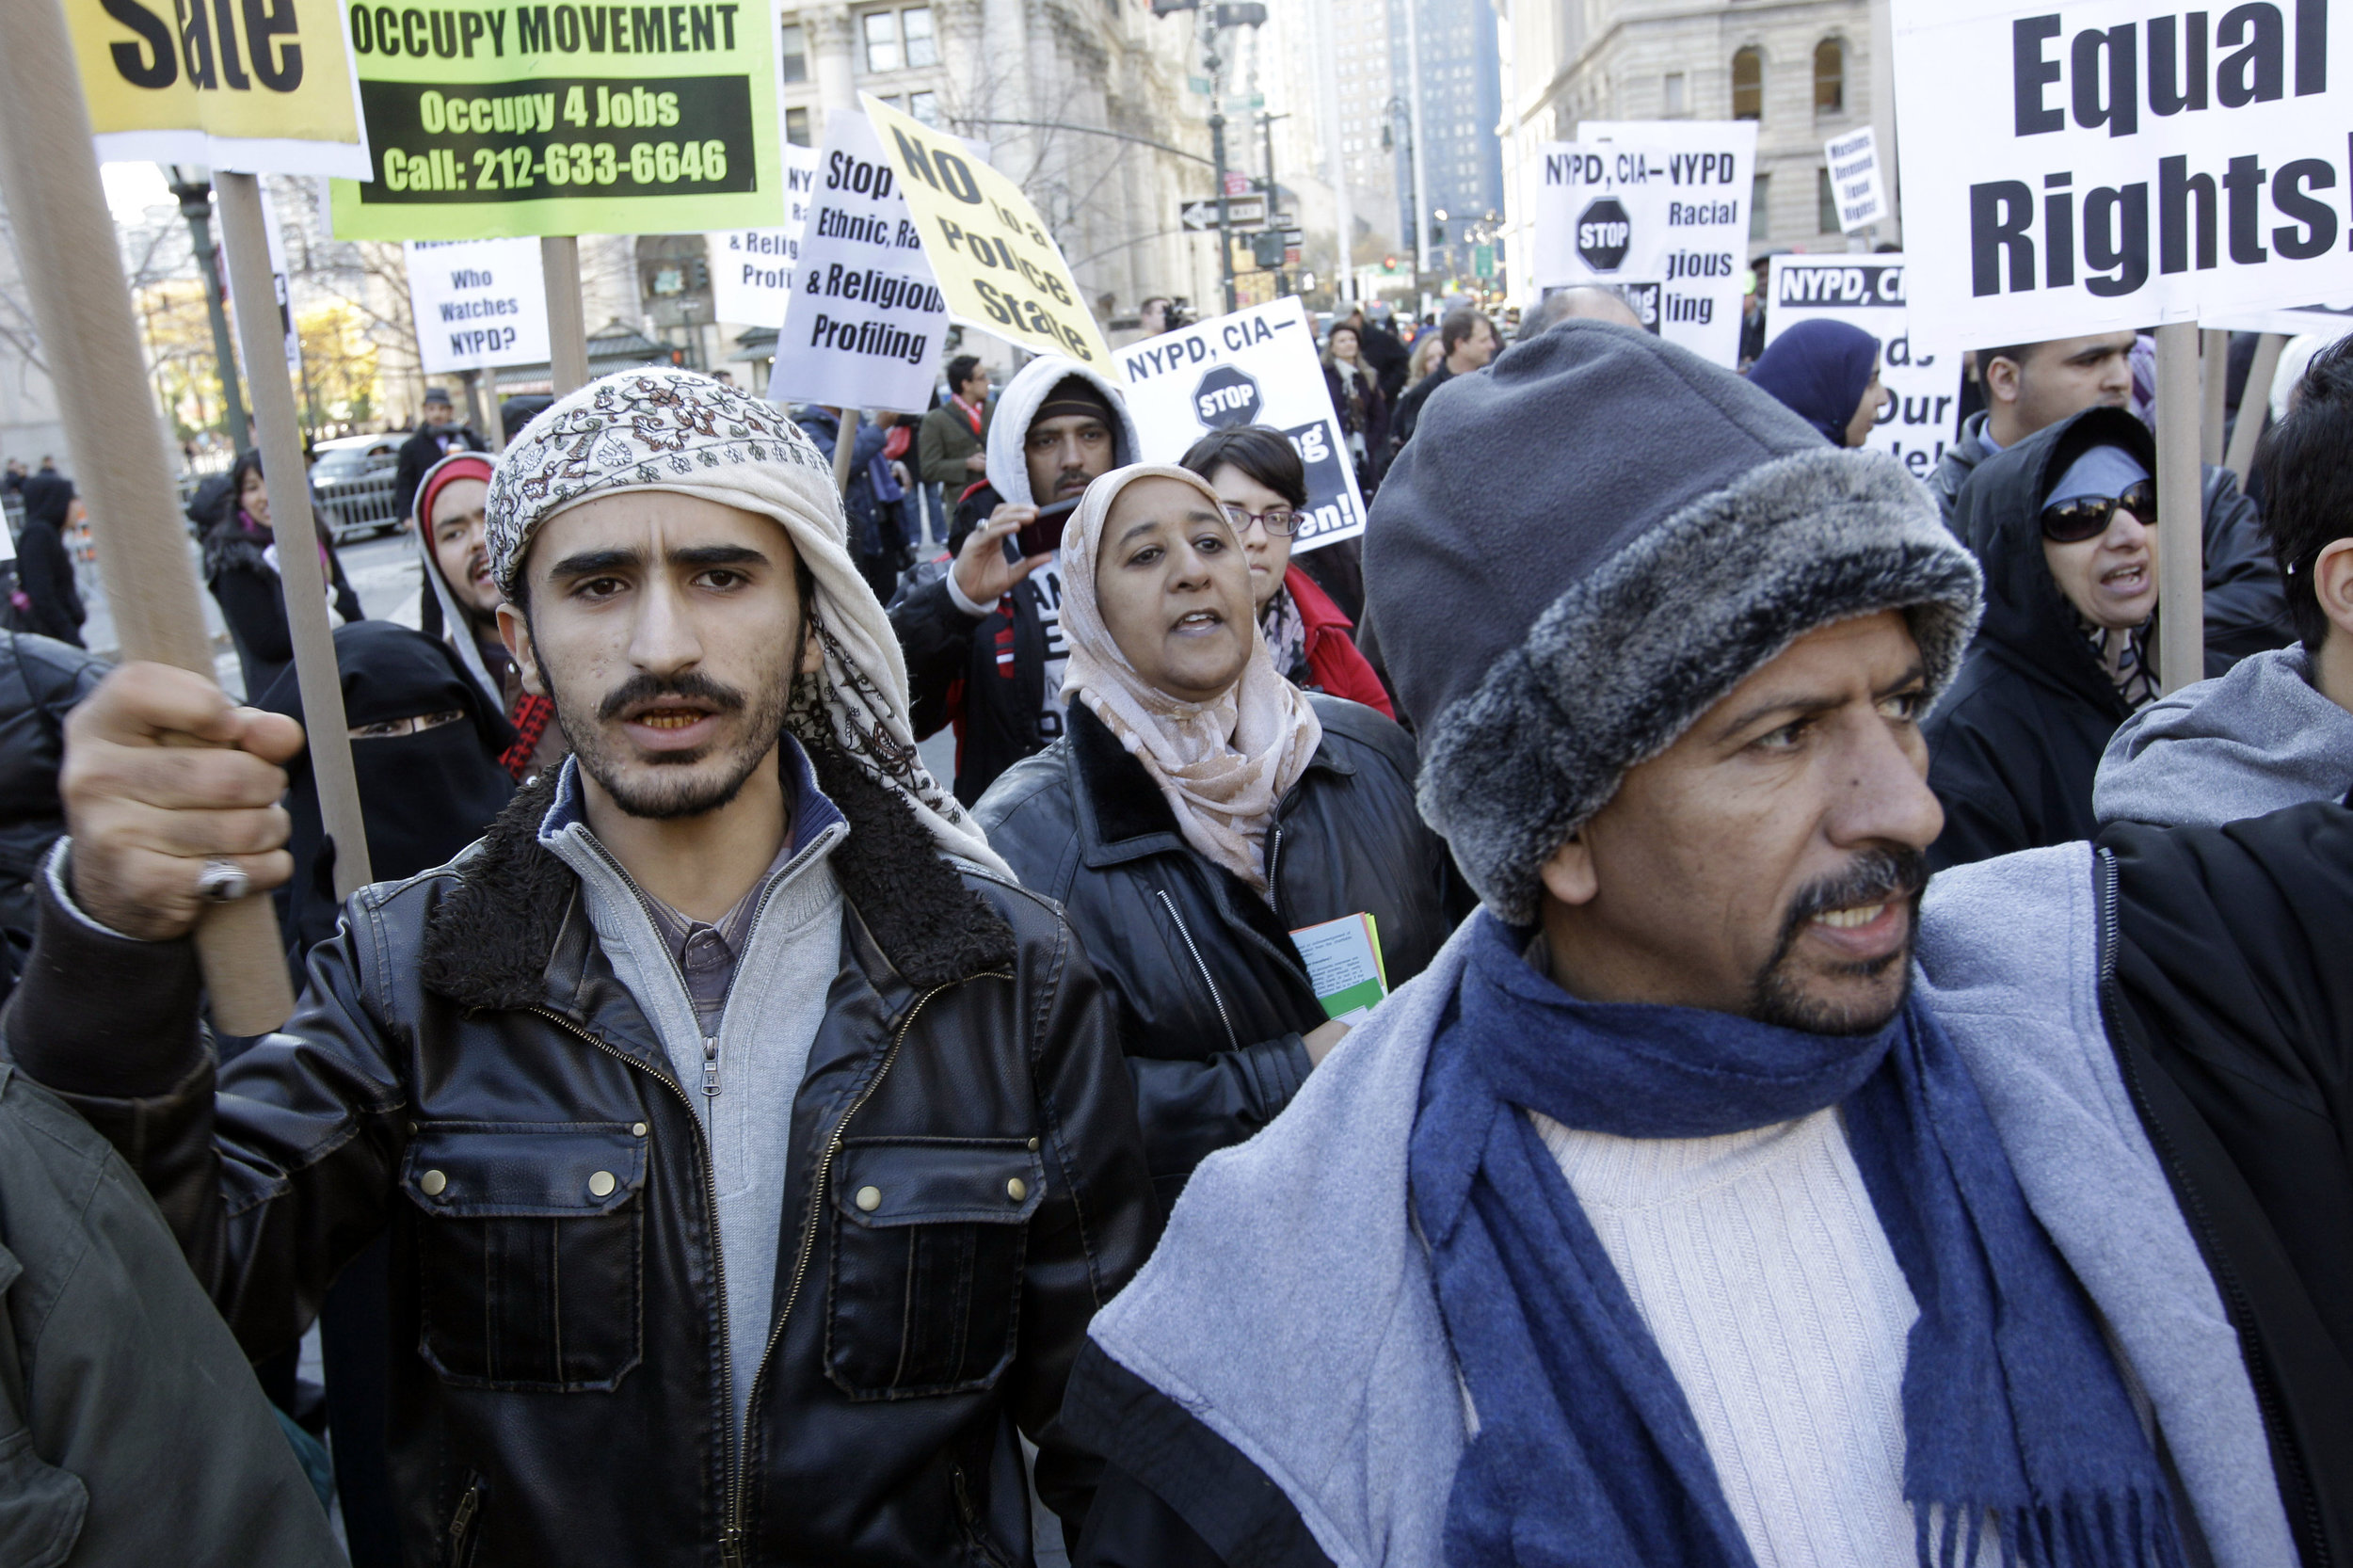 Hundreds of Muslim New Yorkers gather to pray and protest a decade of the New York Police Department spying on Muslim communities.Hundreds of Muslim New Yorkers gather to pray and protest a decade of the New York Police Department spying on Muslim communities.  AP Photo/Mary Altaffer